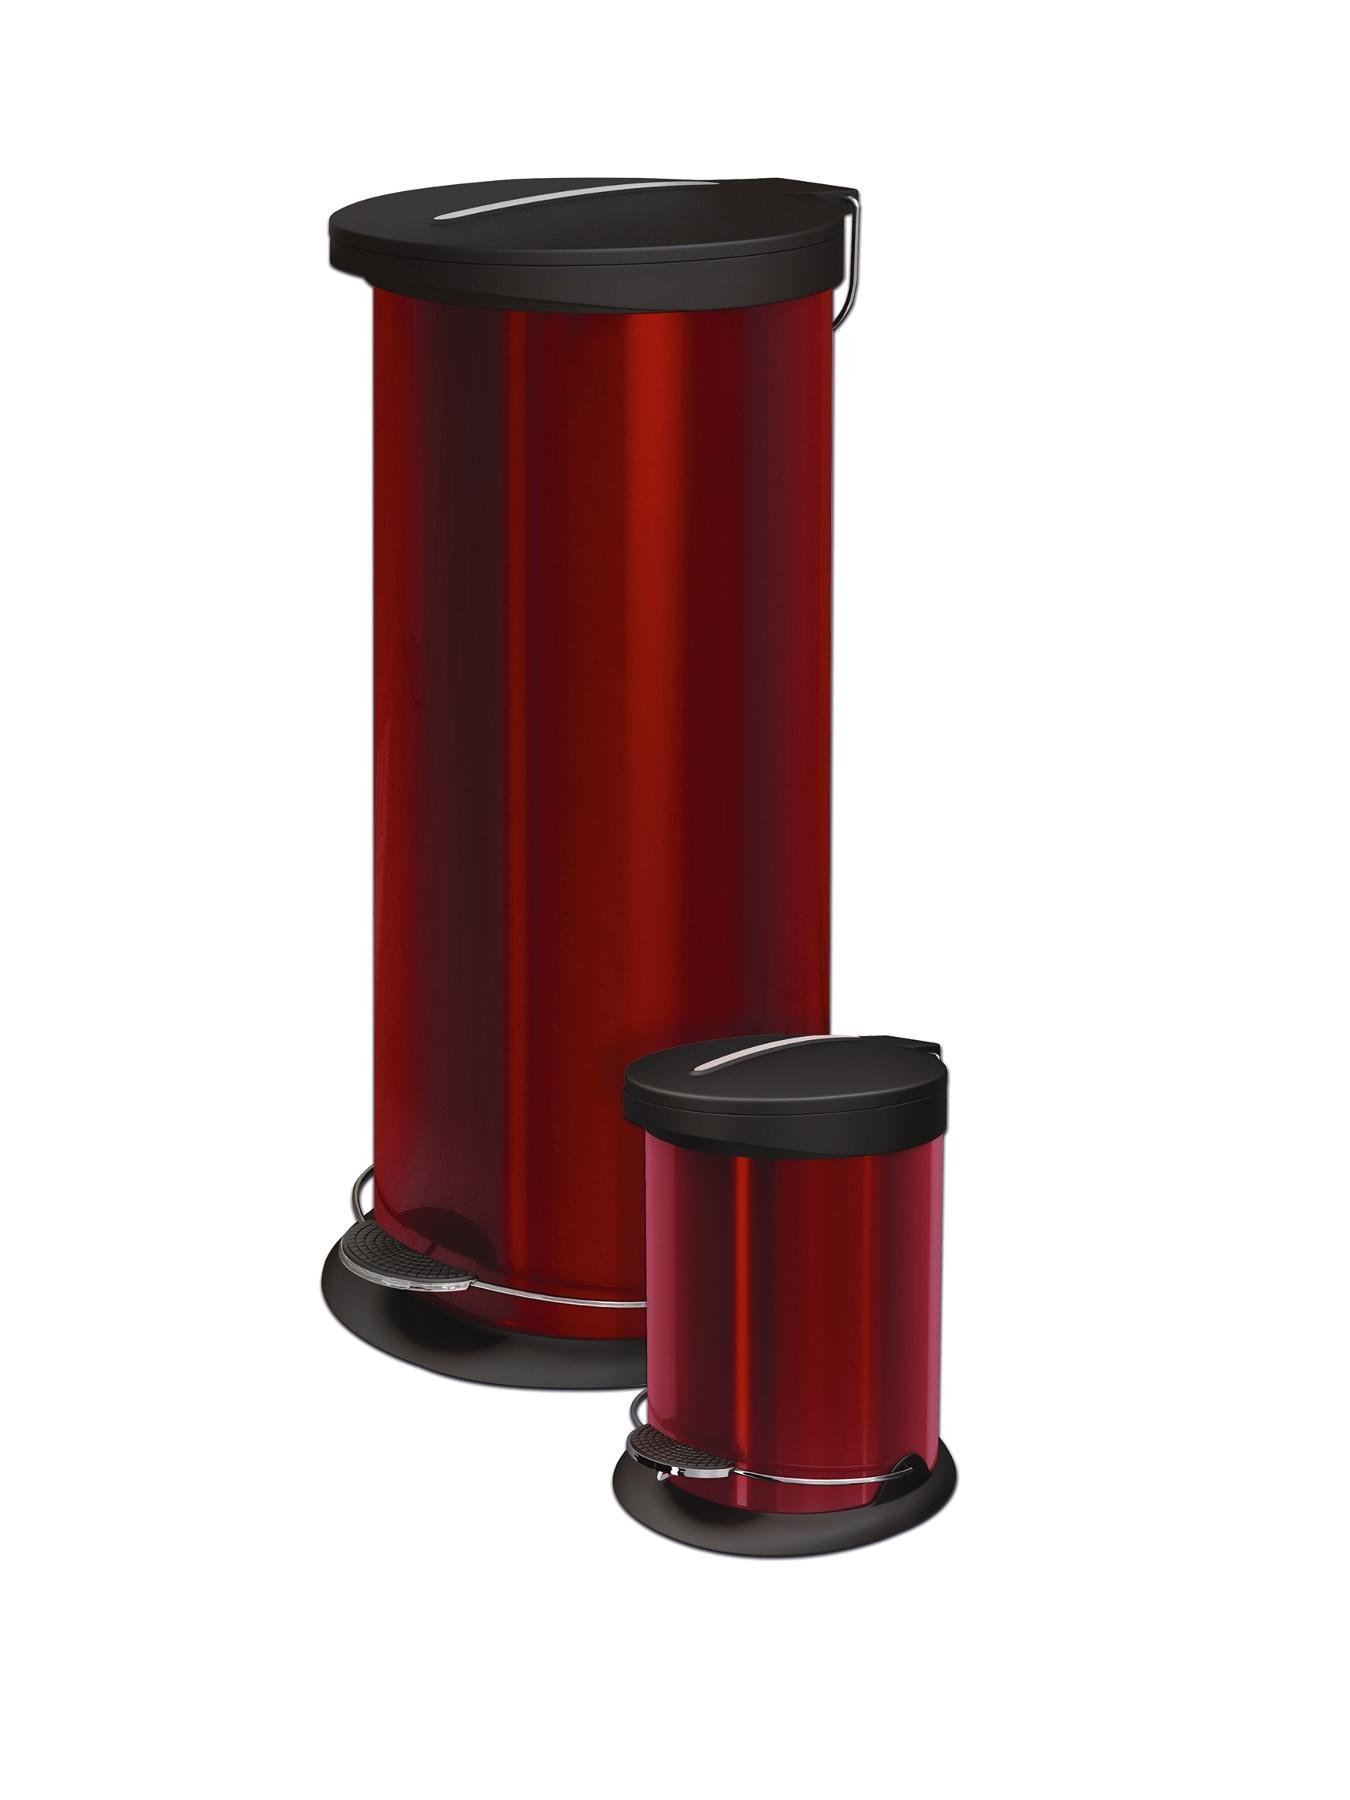 Morphy Richards Pedal Bin With FREE 5-Litre Pedal Bin - Red